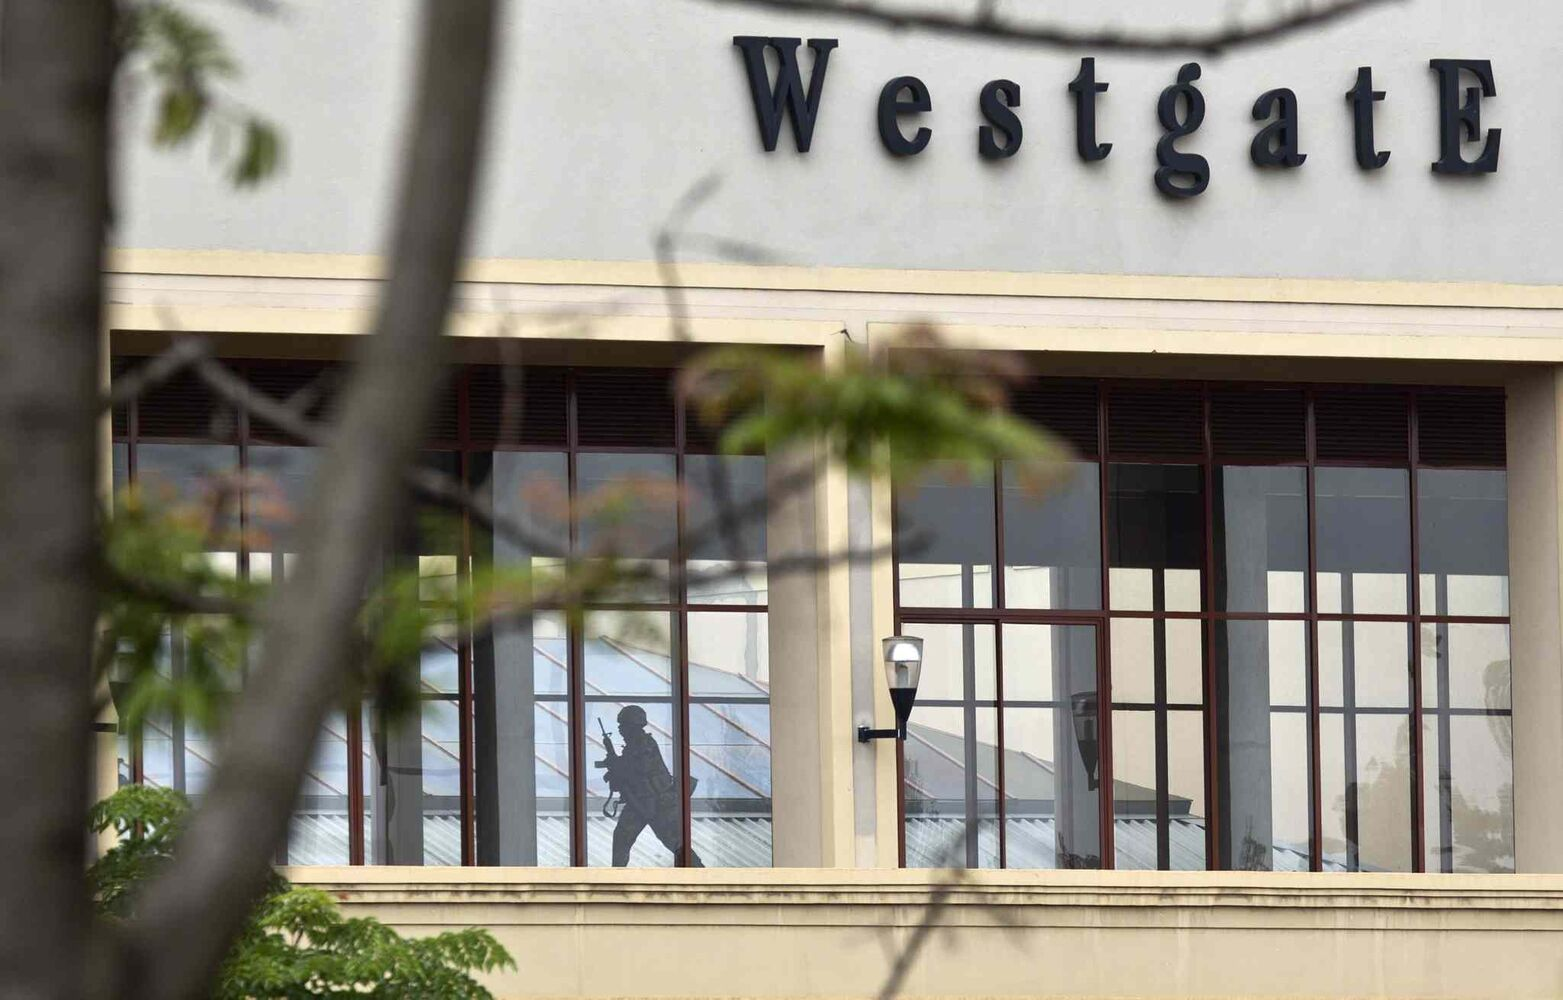 A Kenyan soldier runs through a corridor on an upper floor, shortly before an explosion was heard, at the Westgate Mall in Nairobi, Kenya Tuesday.